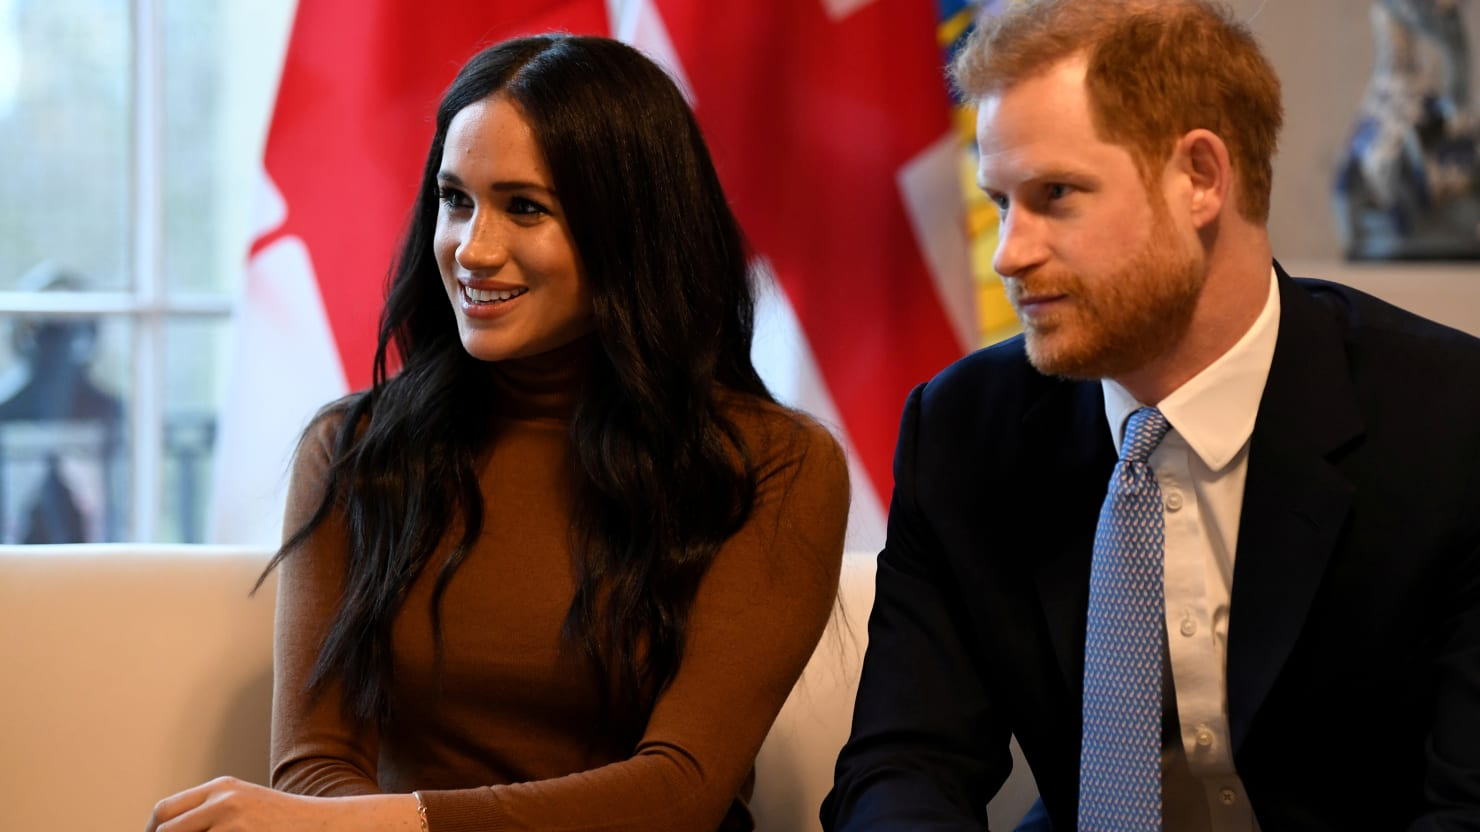 Prince Harry and Meghan Snipe at the Queen for Banning 'Royal' From Their Brand